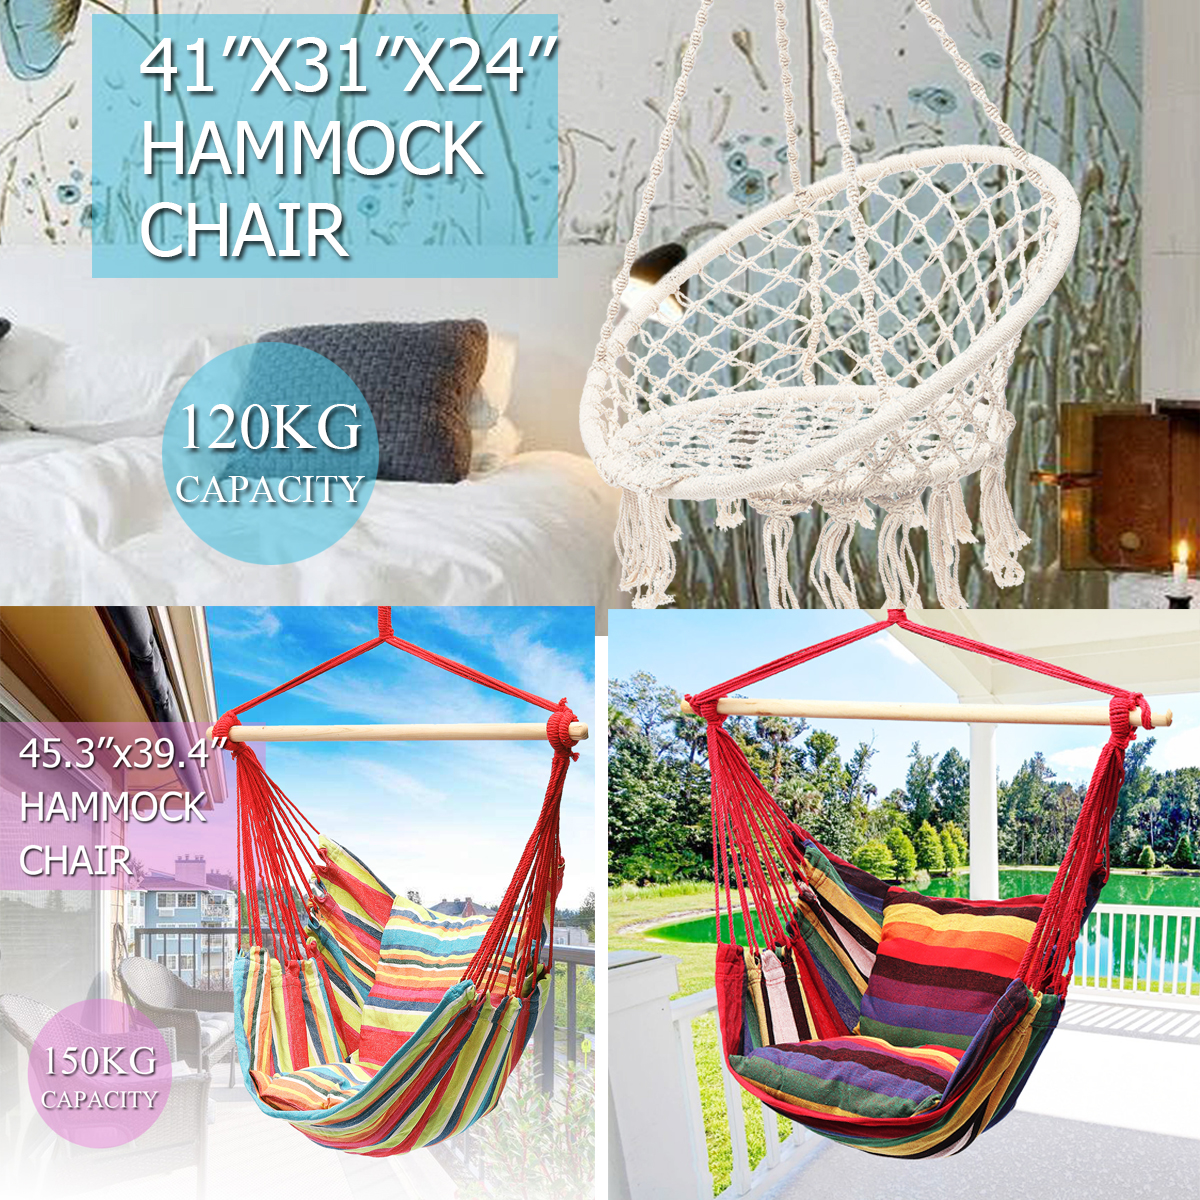 Nordic Round Hanging Hammock Chair Fashion Dormitory Bedroom Swinging Chair Outdoor Furniture Indoor Camping Cottage Garden chair outdoor garden hammock net indoor hanging chair